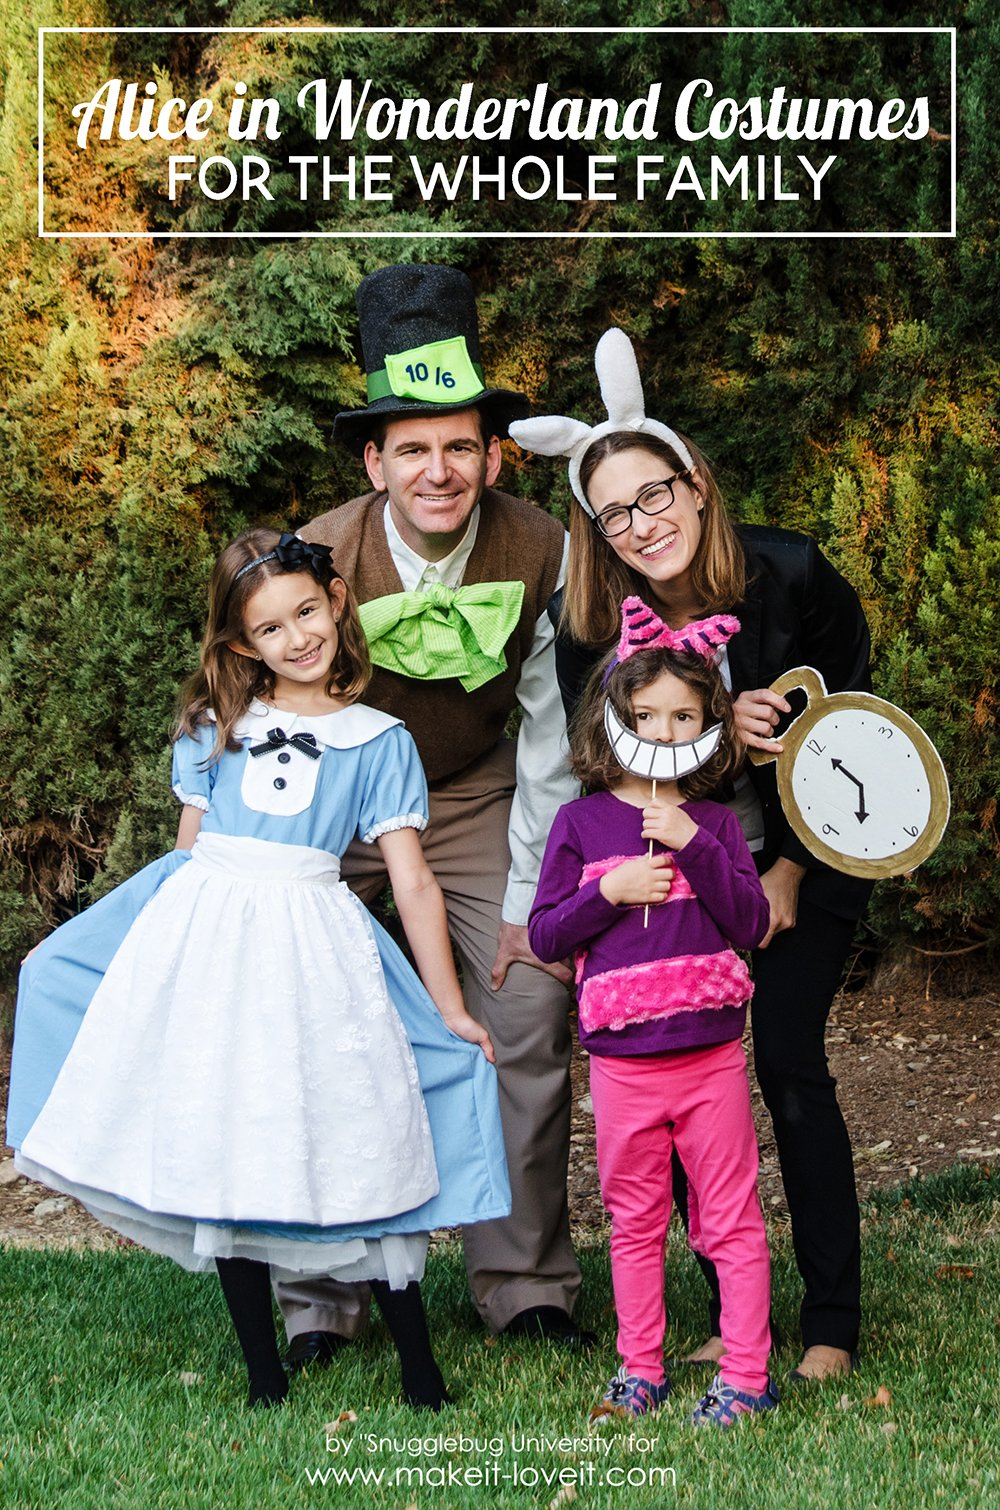 Alice In Wonderland Costumes – For The Whole Family!